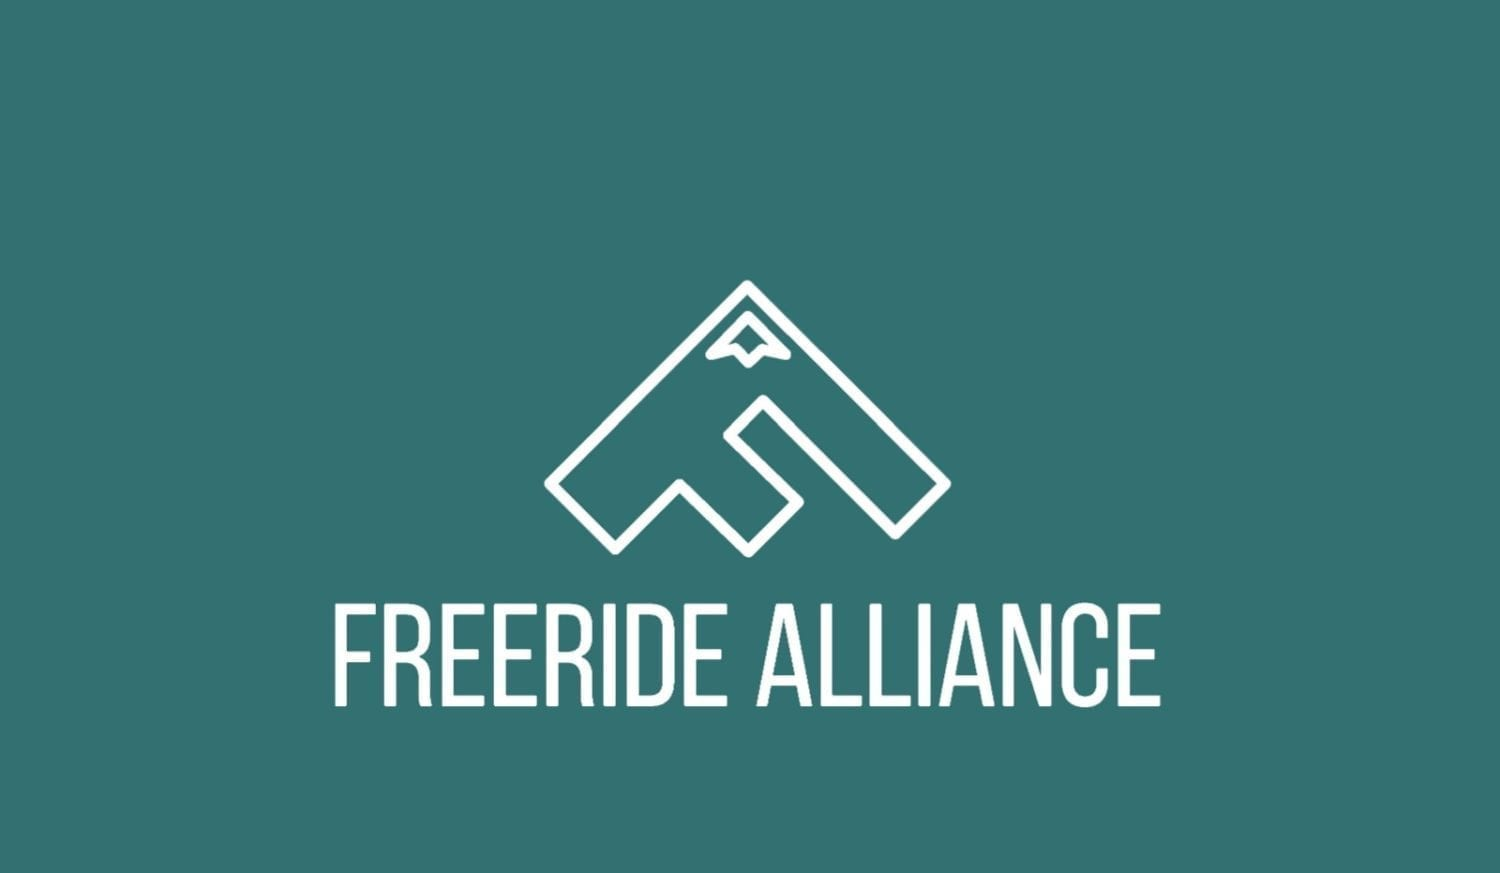 Freeride Alliance